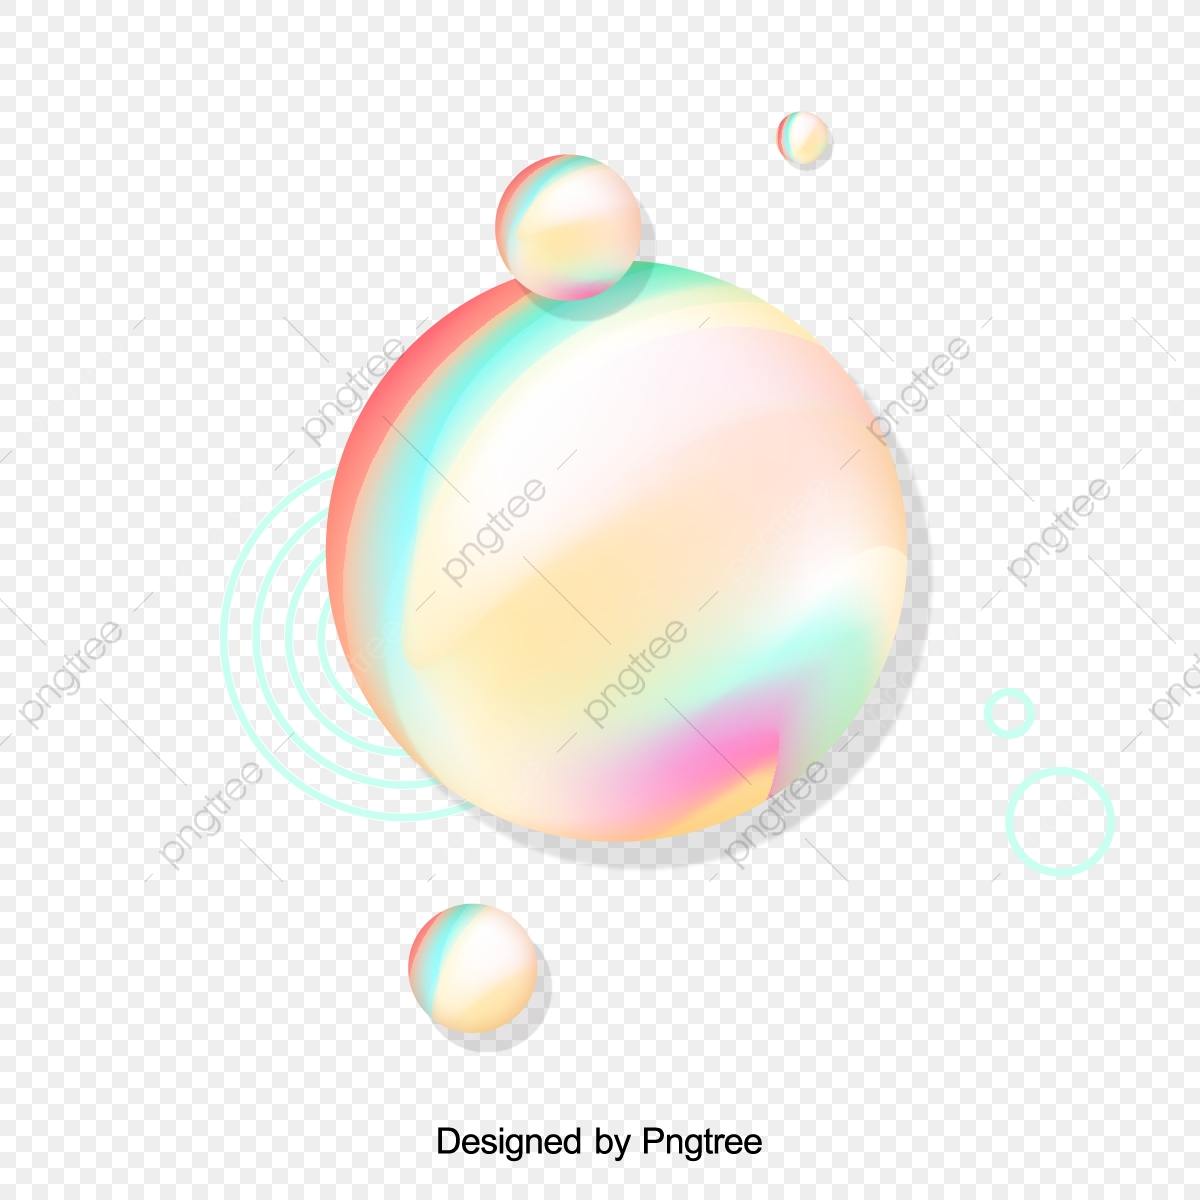 Colorful Spherical Geometric Vector, Spherical Vector